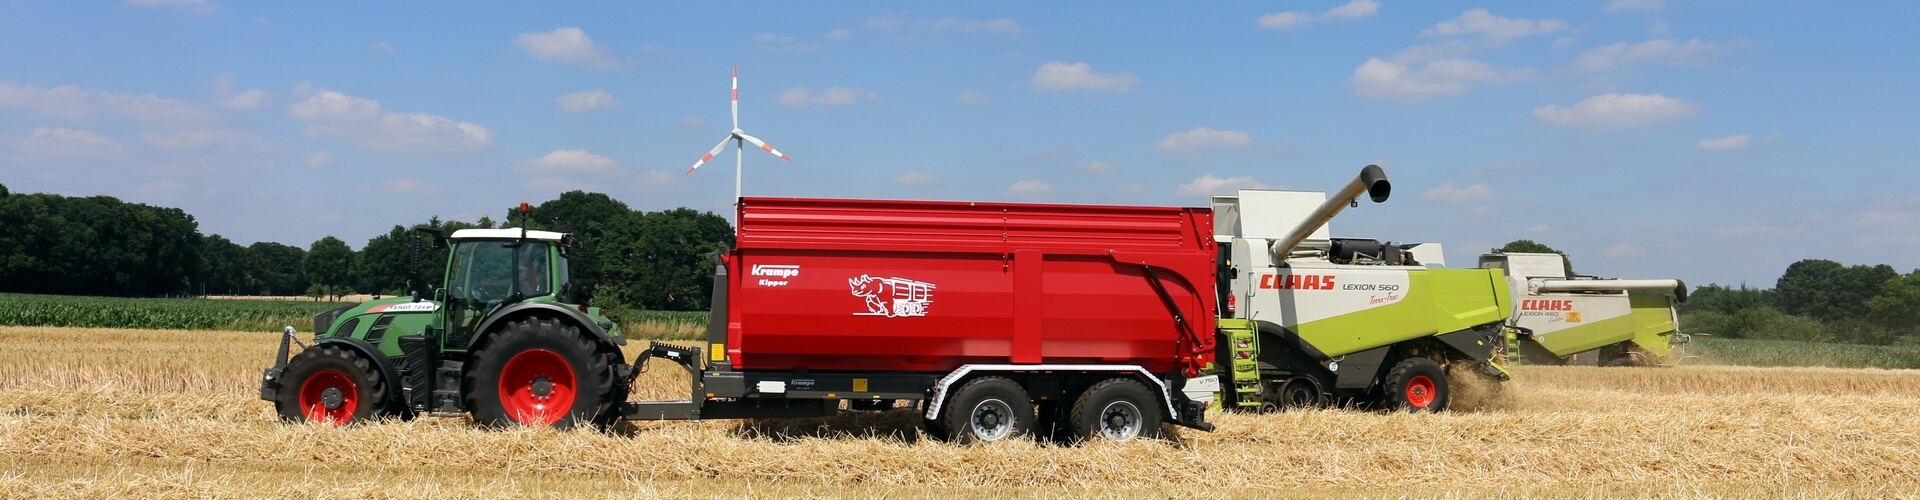 Kramp hook lift trailer wheat harvest